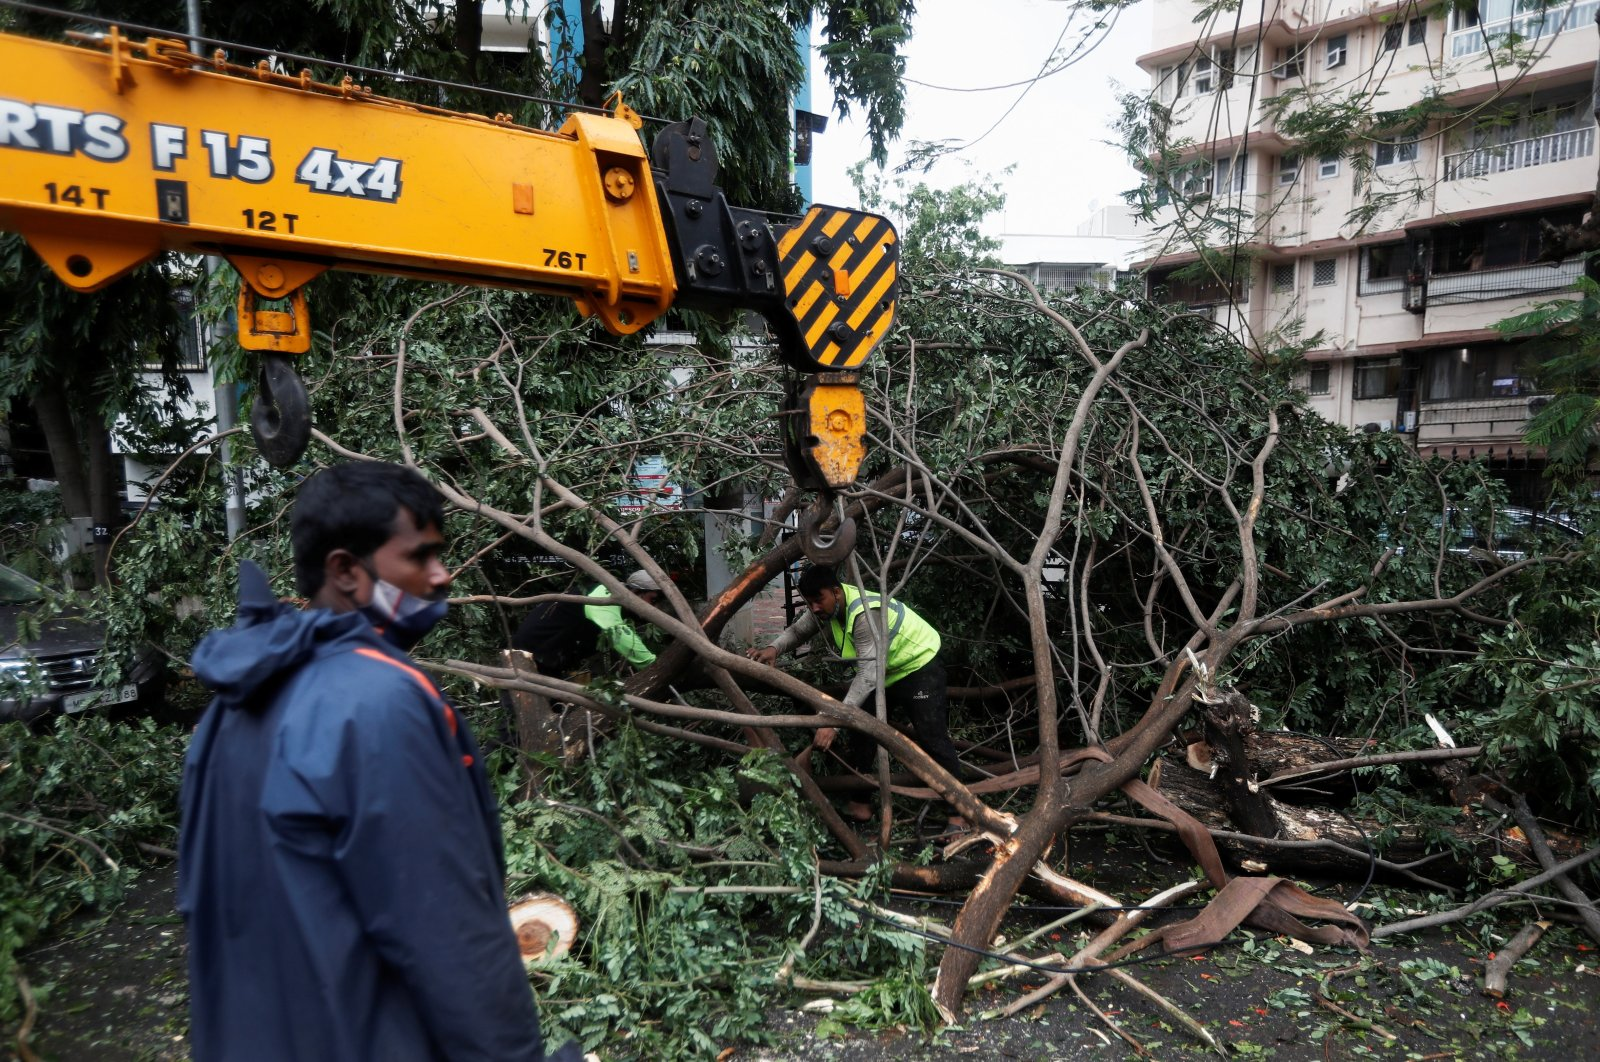 People attempt to remove uprooted trees from the entrance of a residential building after strong winds caused by Cyclone Tauktae, in Mumbai, India, May 18, 2021. (Reuters Photo)